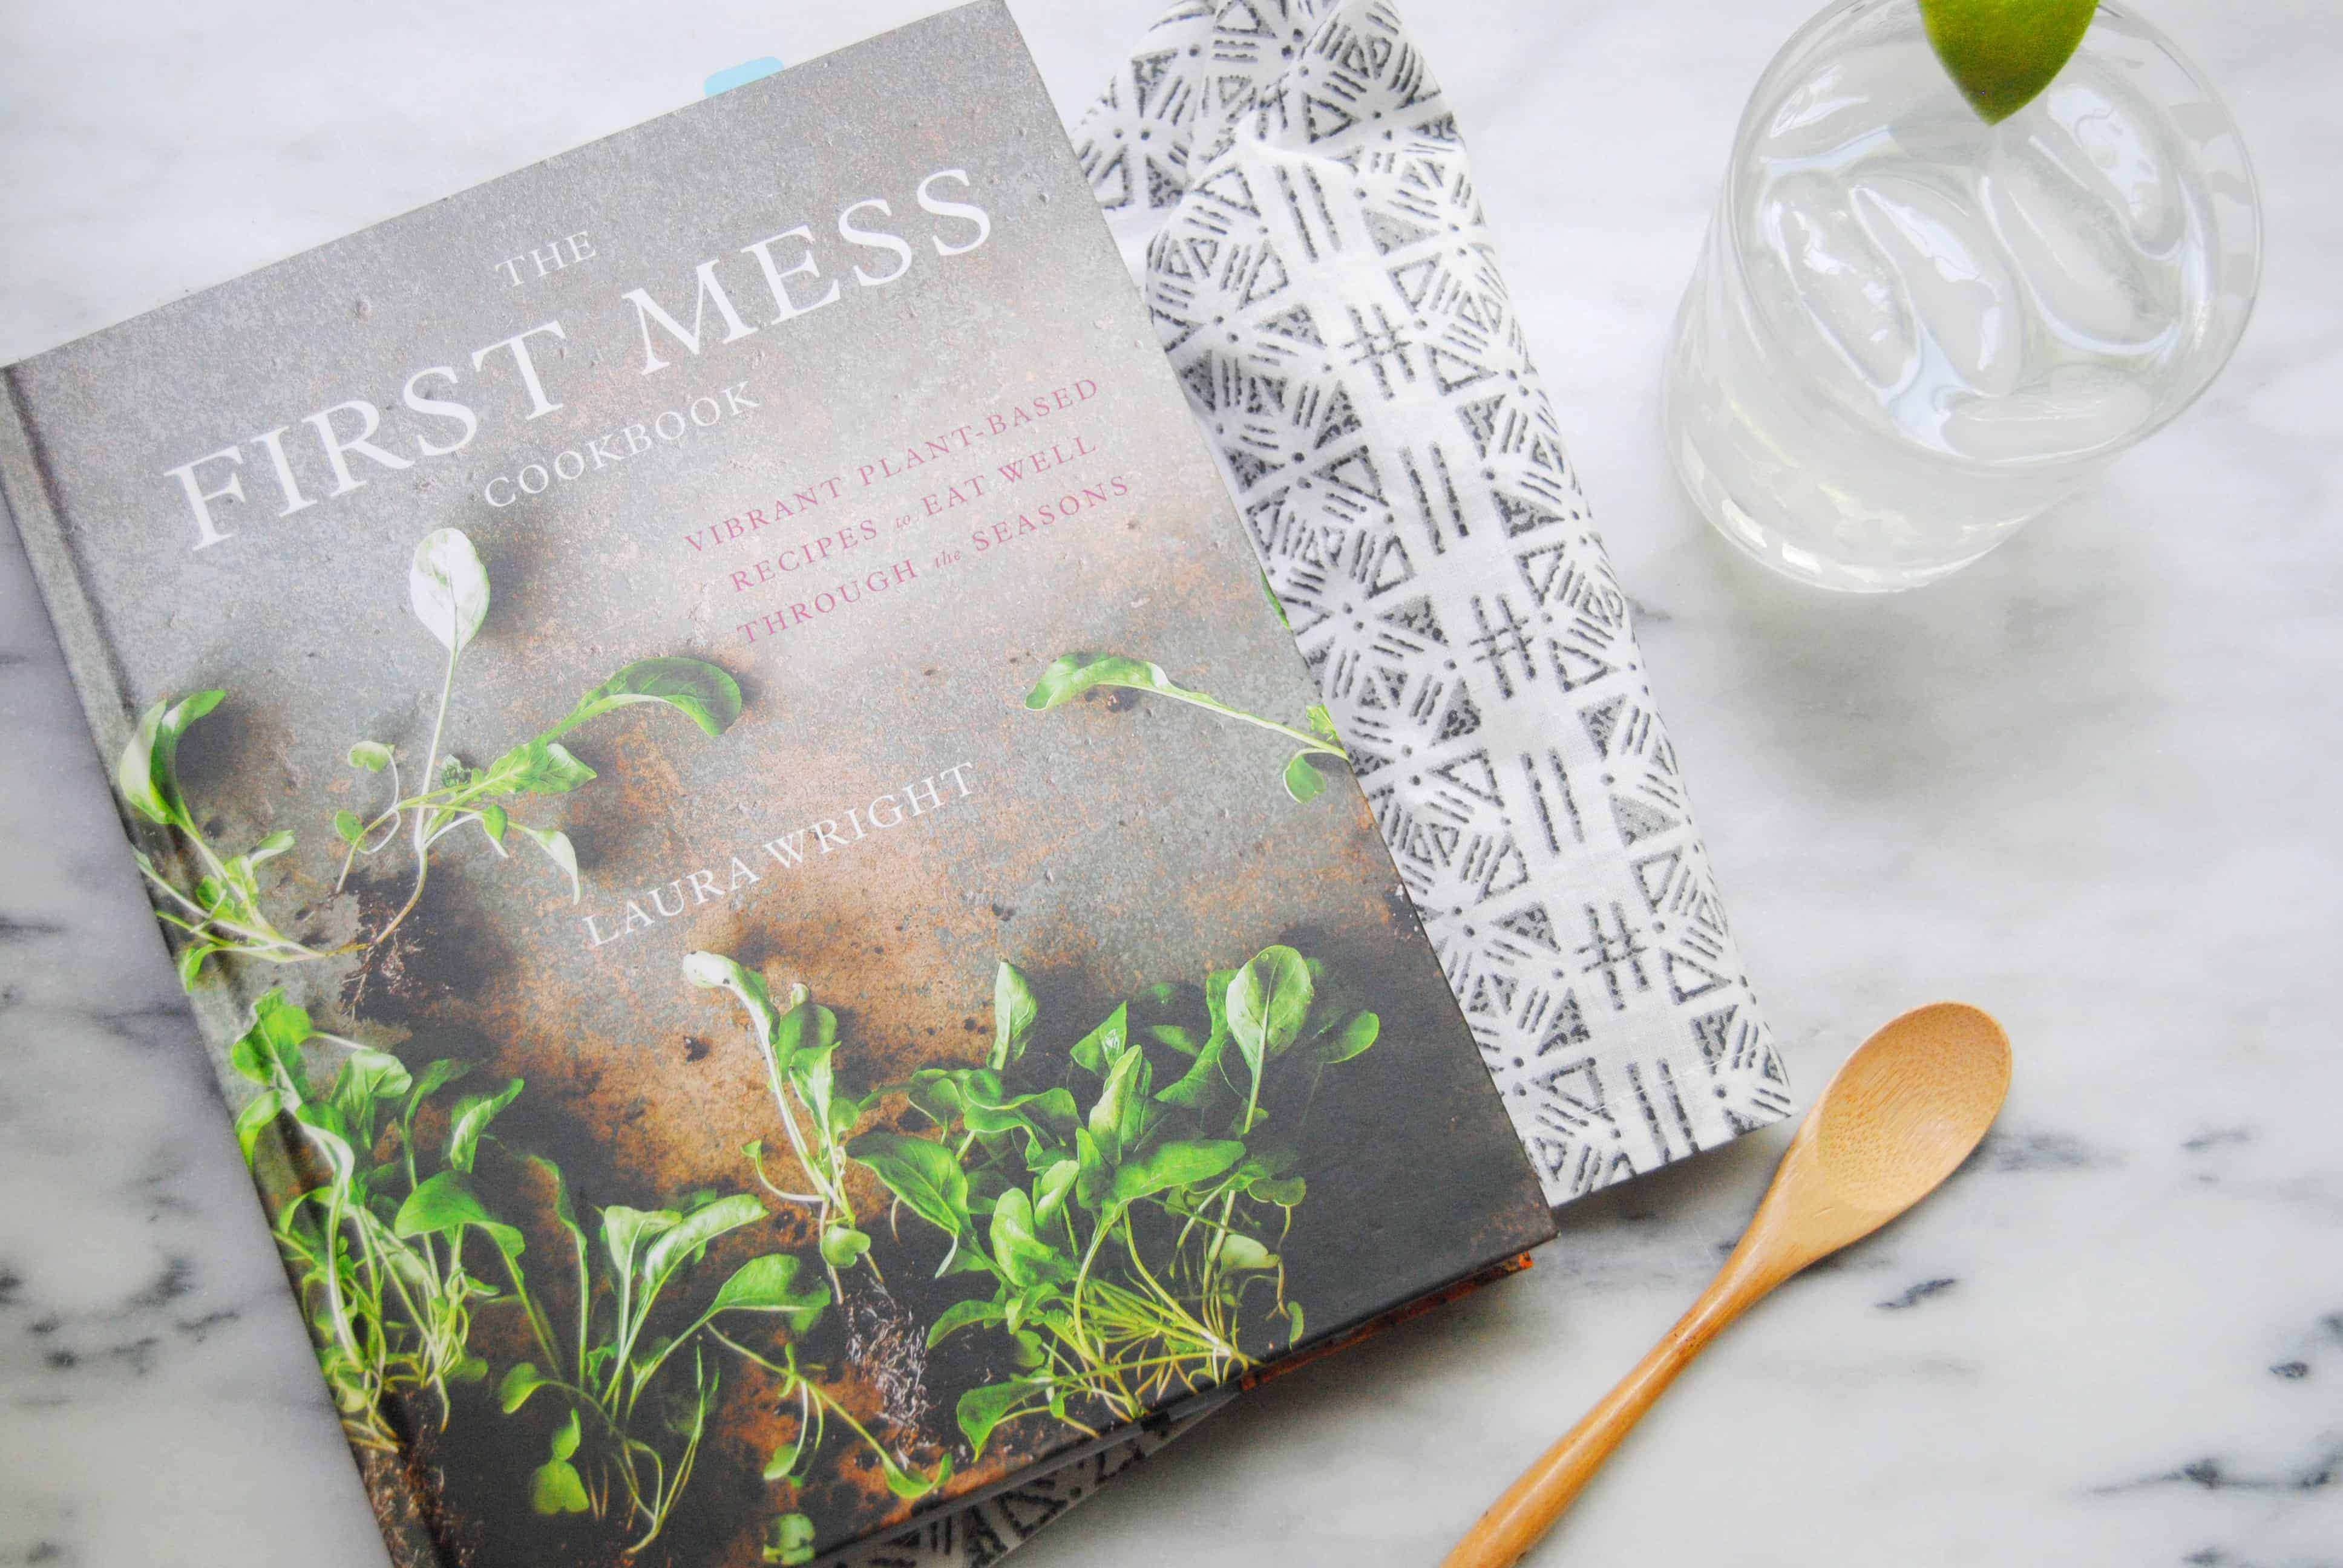 The Review: The First Mess